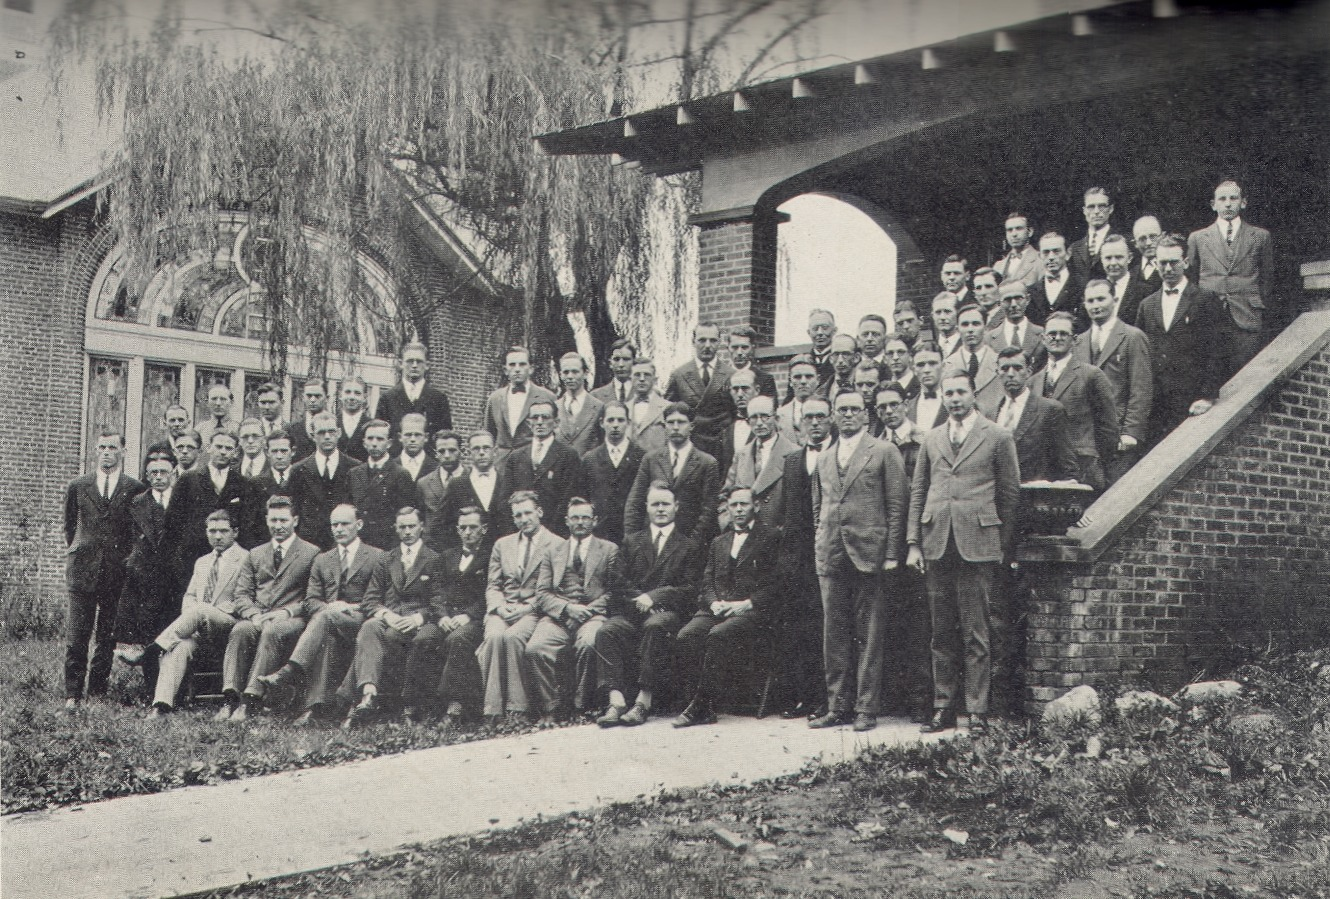 Group of Baptist ministers standing in front of the Jarrett House, 1927